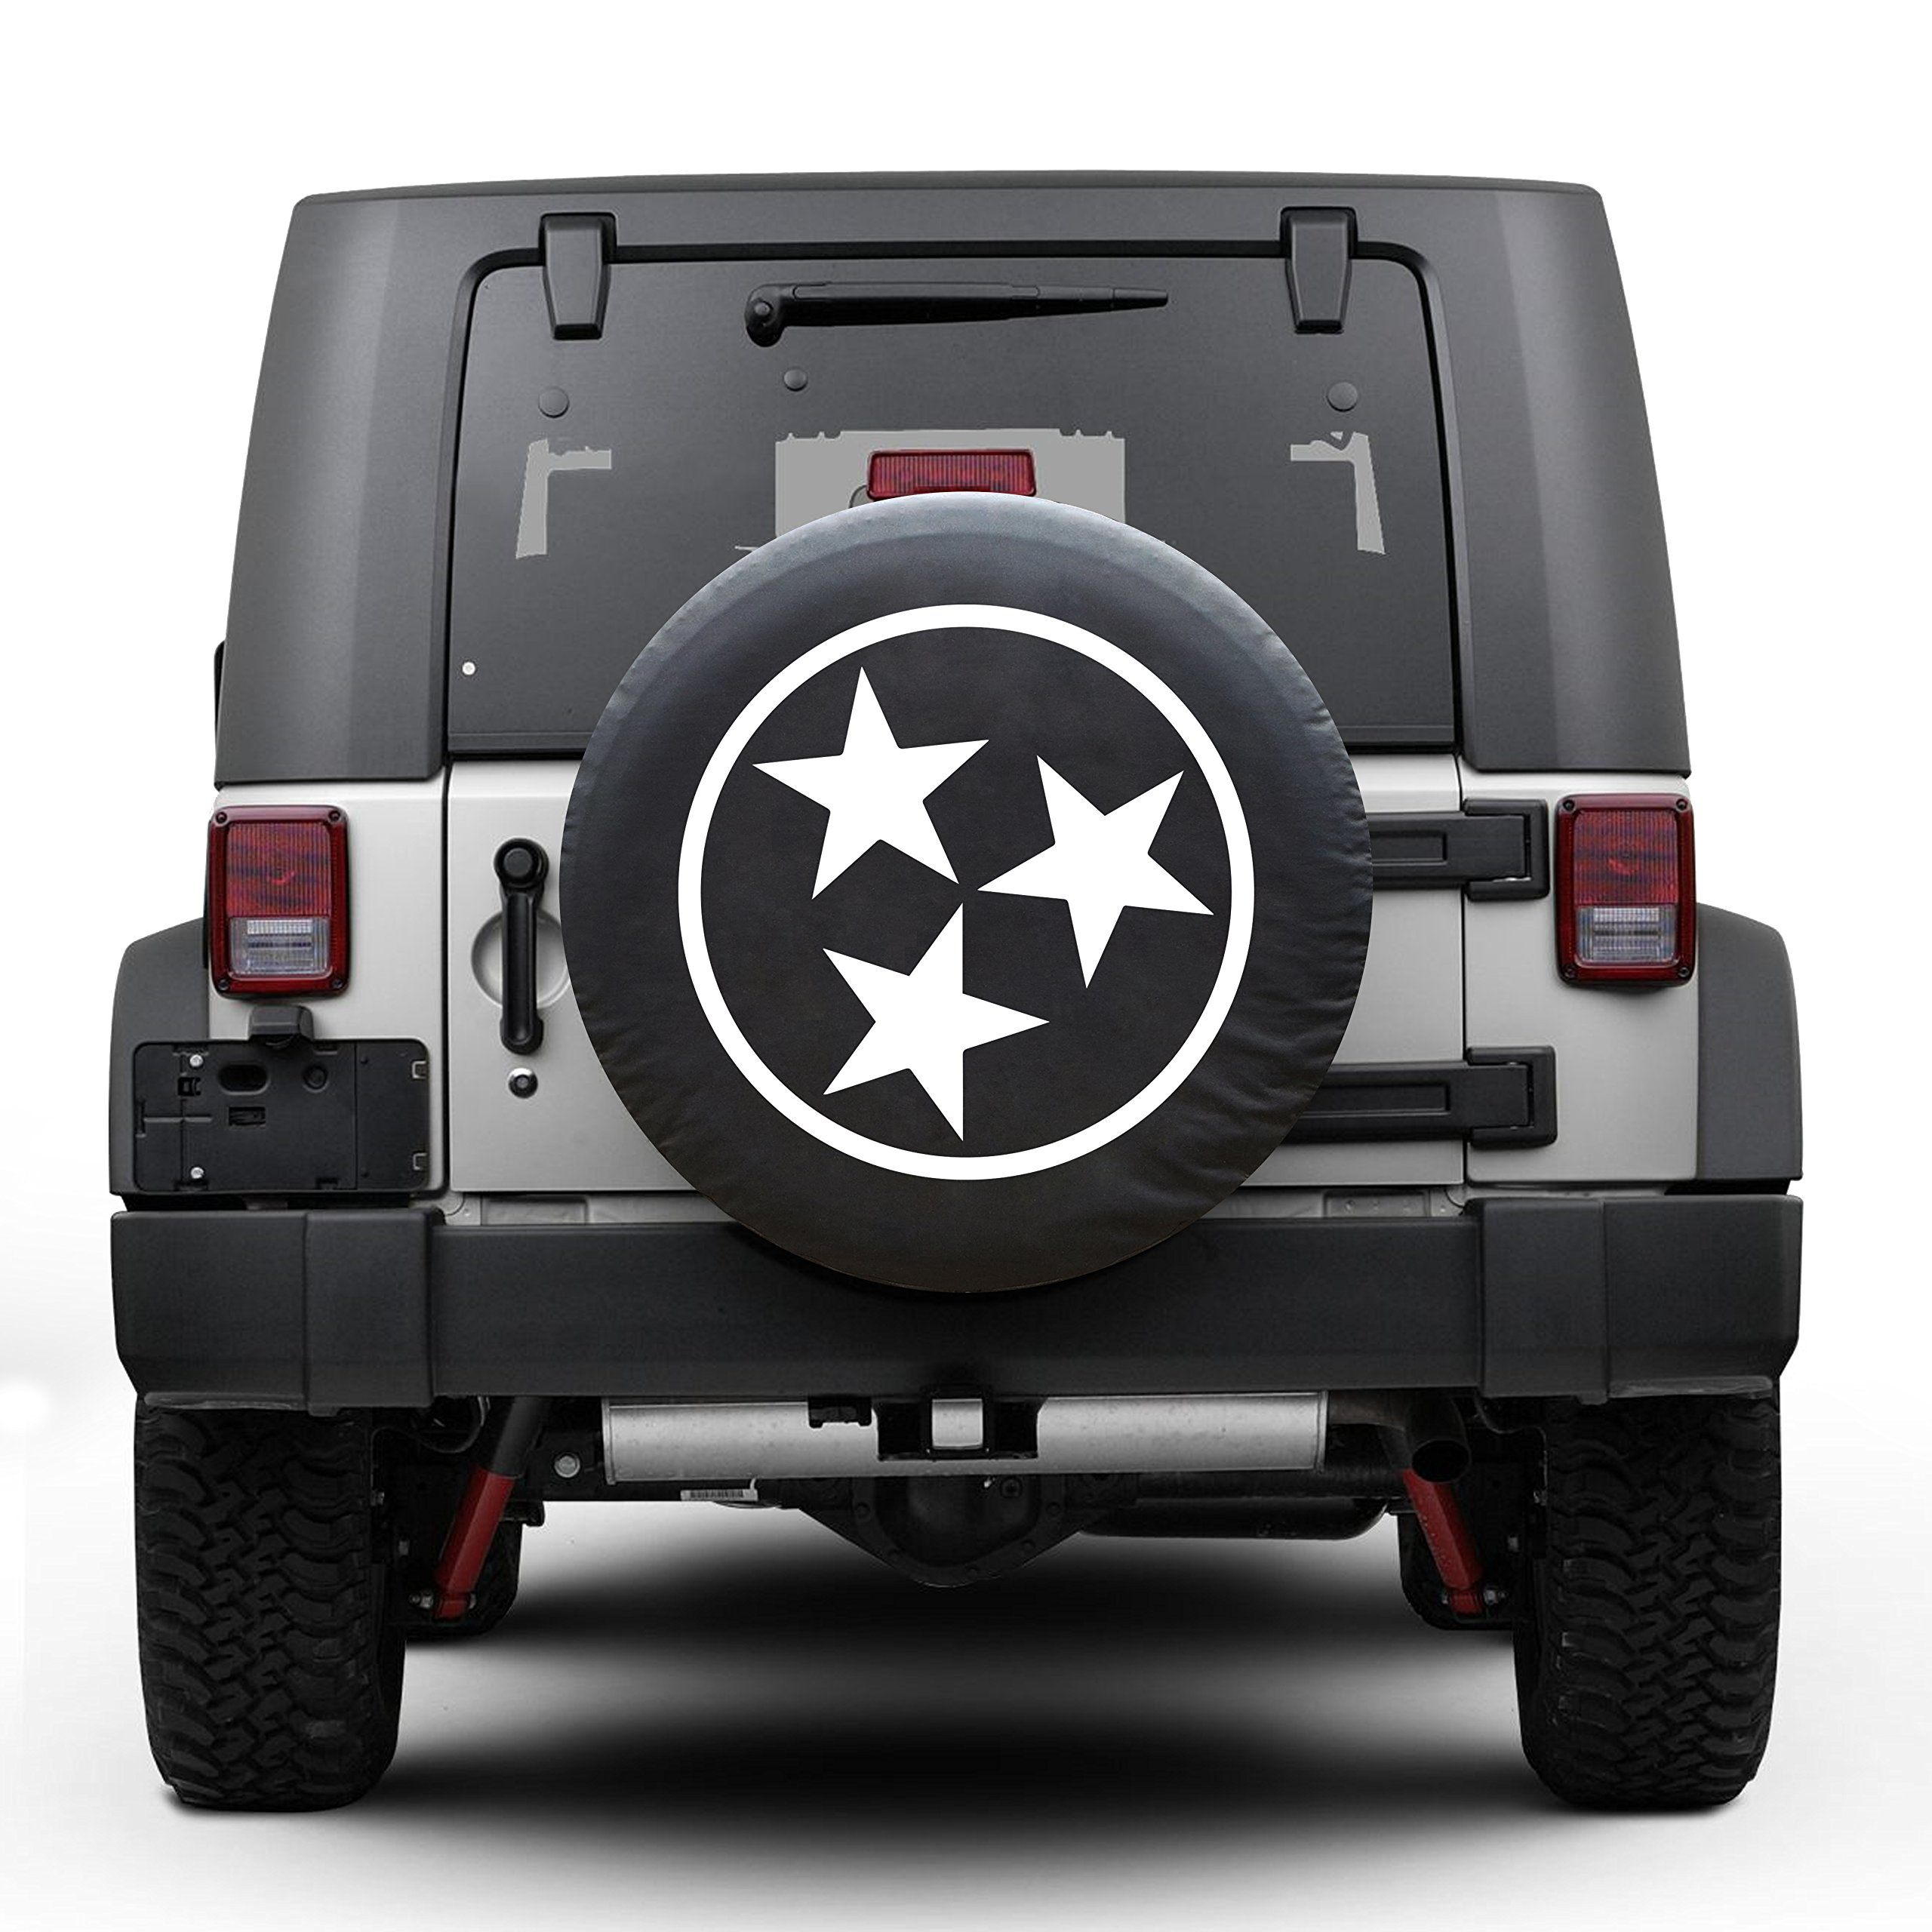 Tennessee tri star Tire Cover Fits 30''-32'' Tire (GRAY) by Ana-luo (Image #1)